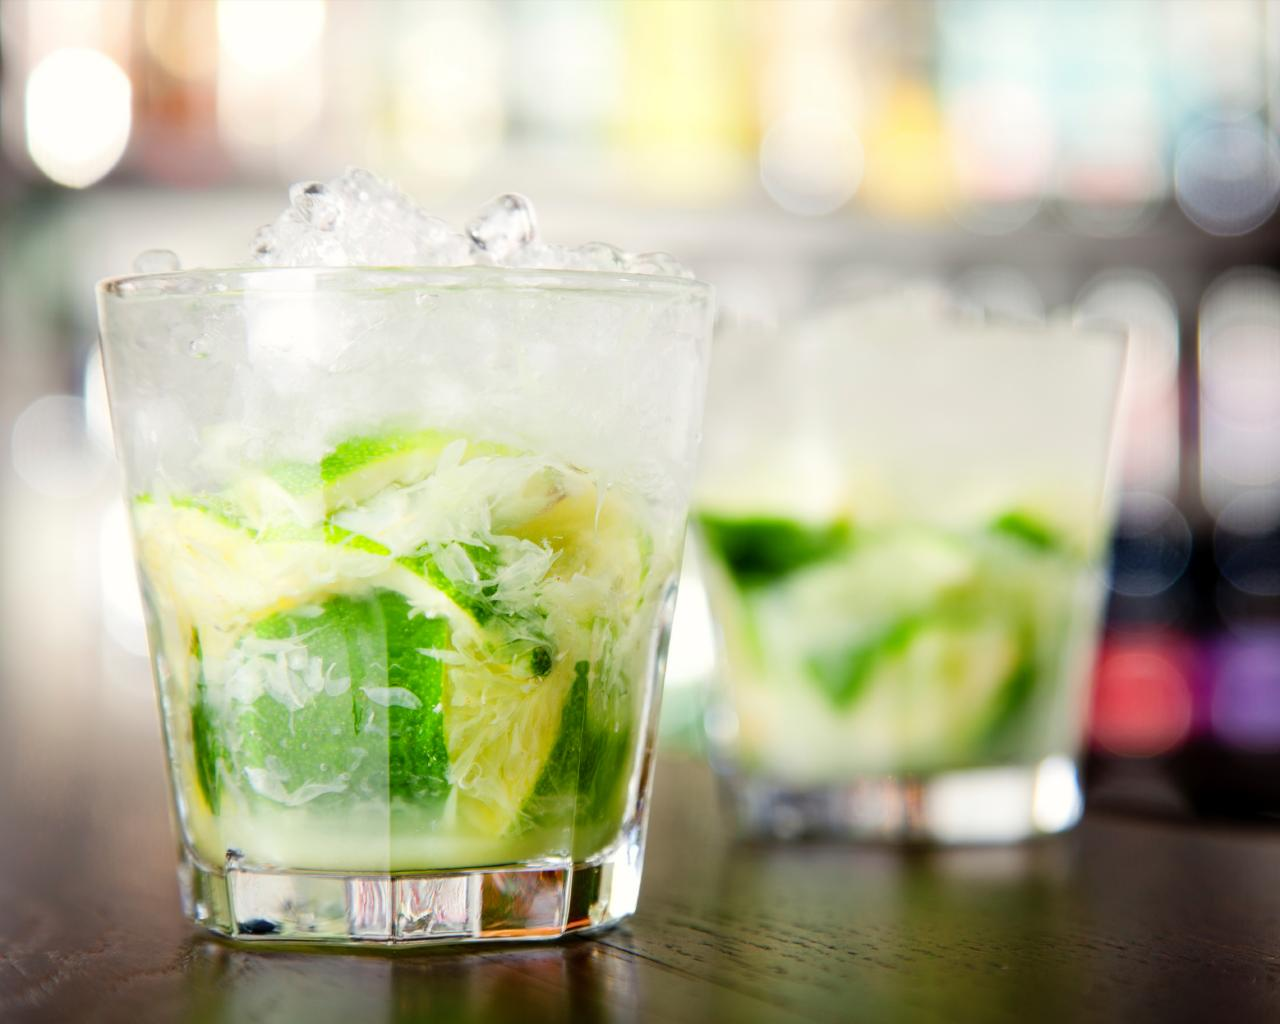 Caipirinha cocktail wallpaper  Brazilian Cocktail Recipes | DIY Network Blog: Made + Remade | DIY